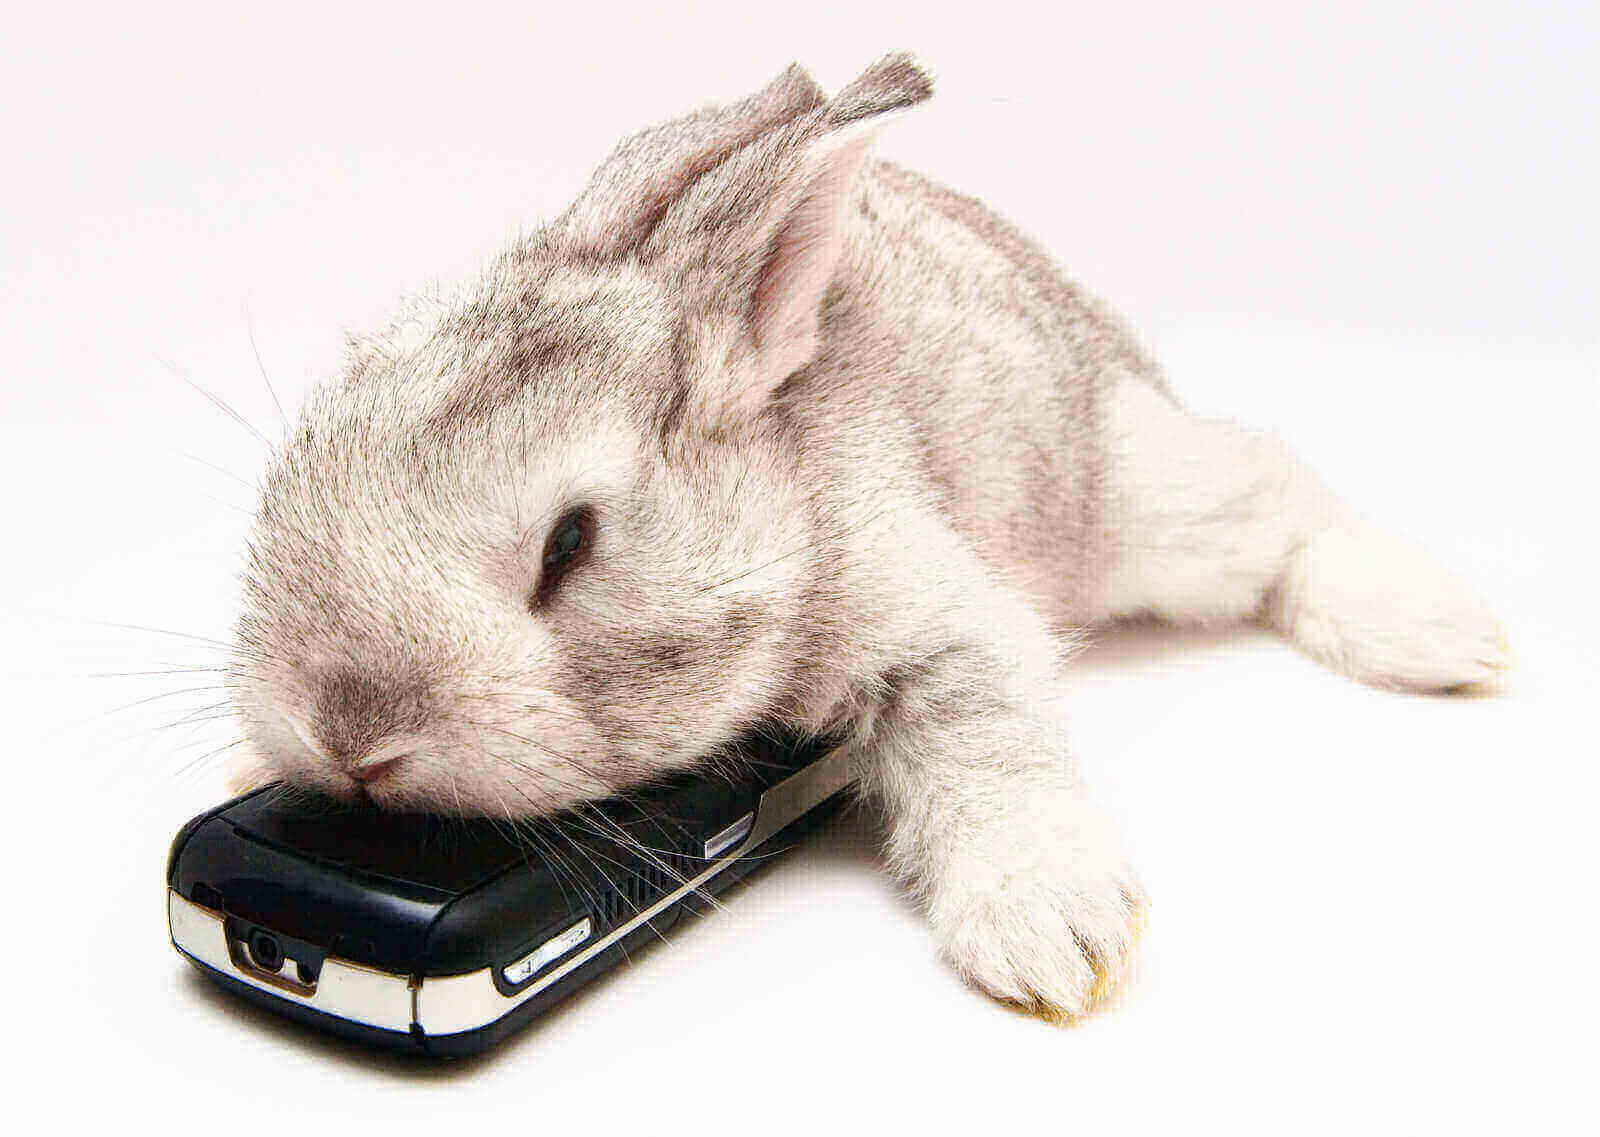 are rabbits nocturnal diurnal or crepuscular